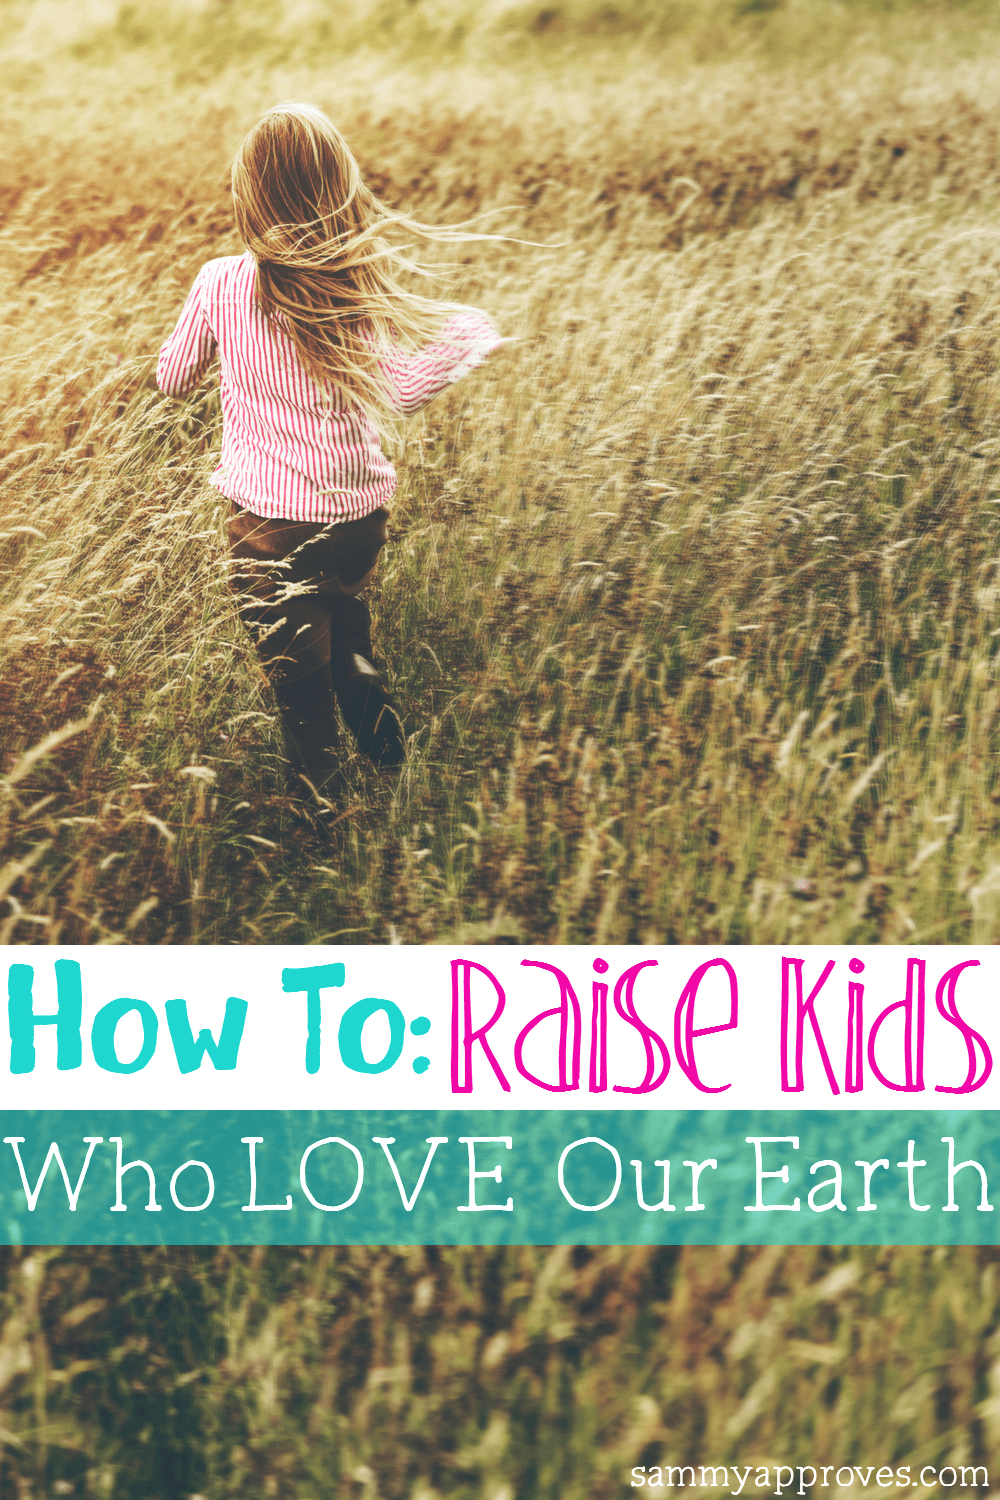 Raise Kids Who Love Our Earth